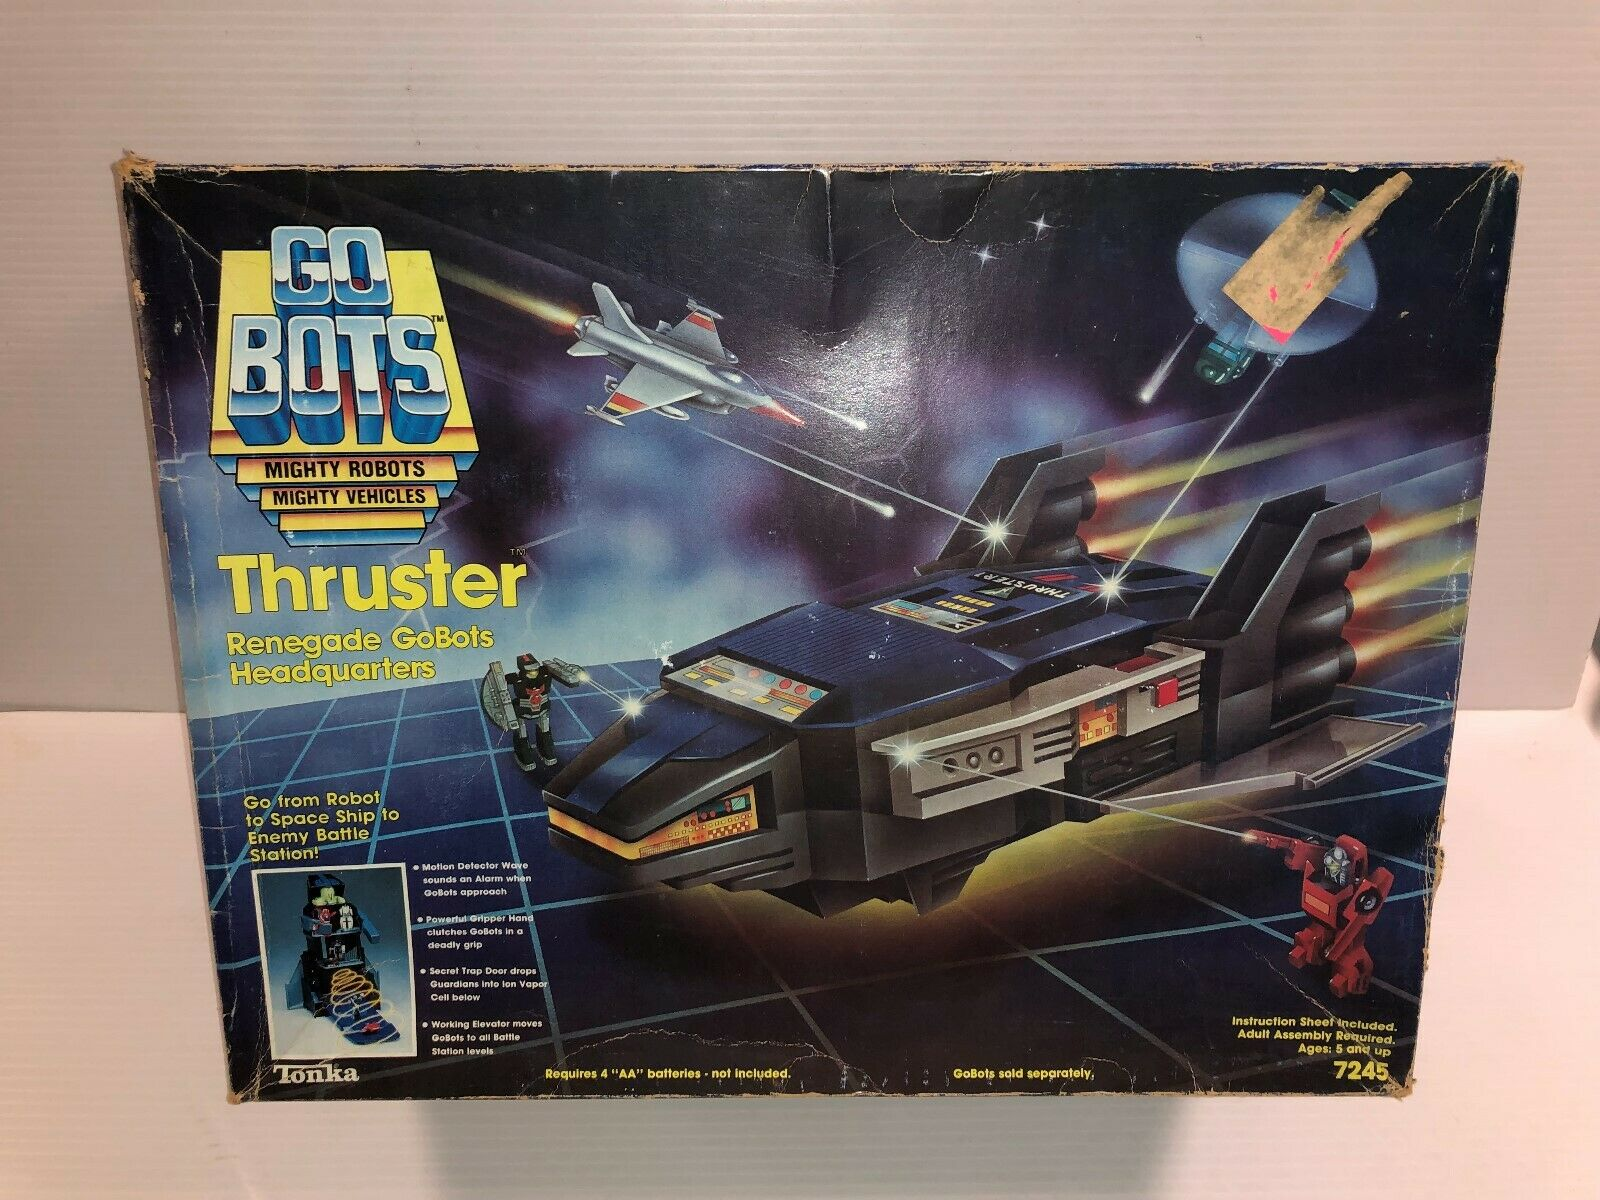 Go Bots Renegade Headquarter Thruster playset in box 7245 model & instructions